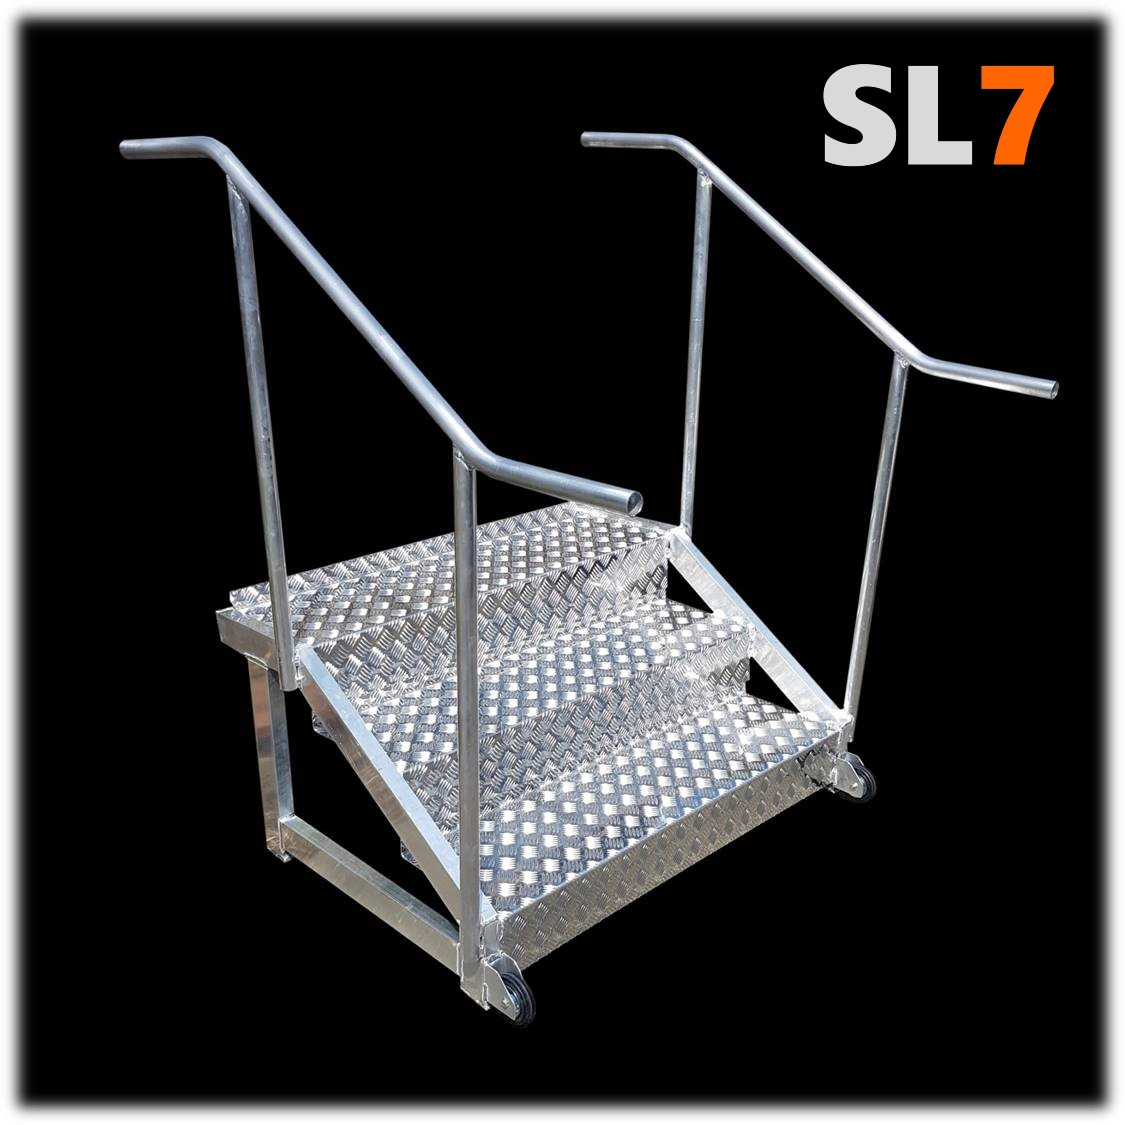 SL7 offers steps as an optional purchase for those clients wanting an ergonomic walkway into the SL7 Vaults.